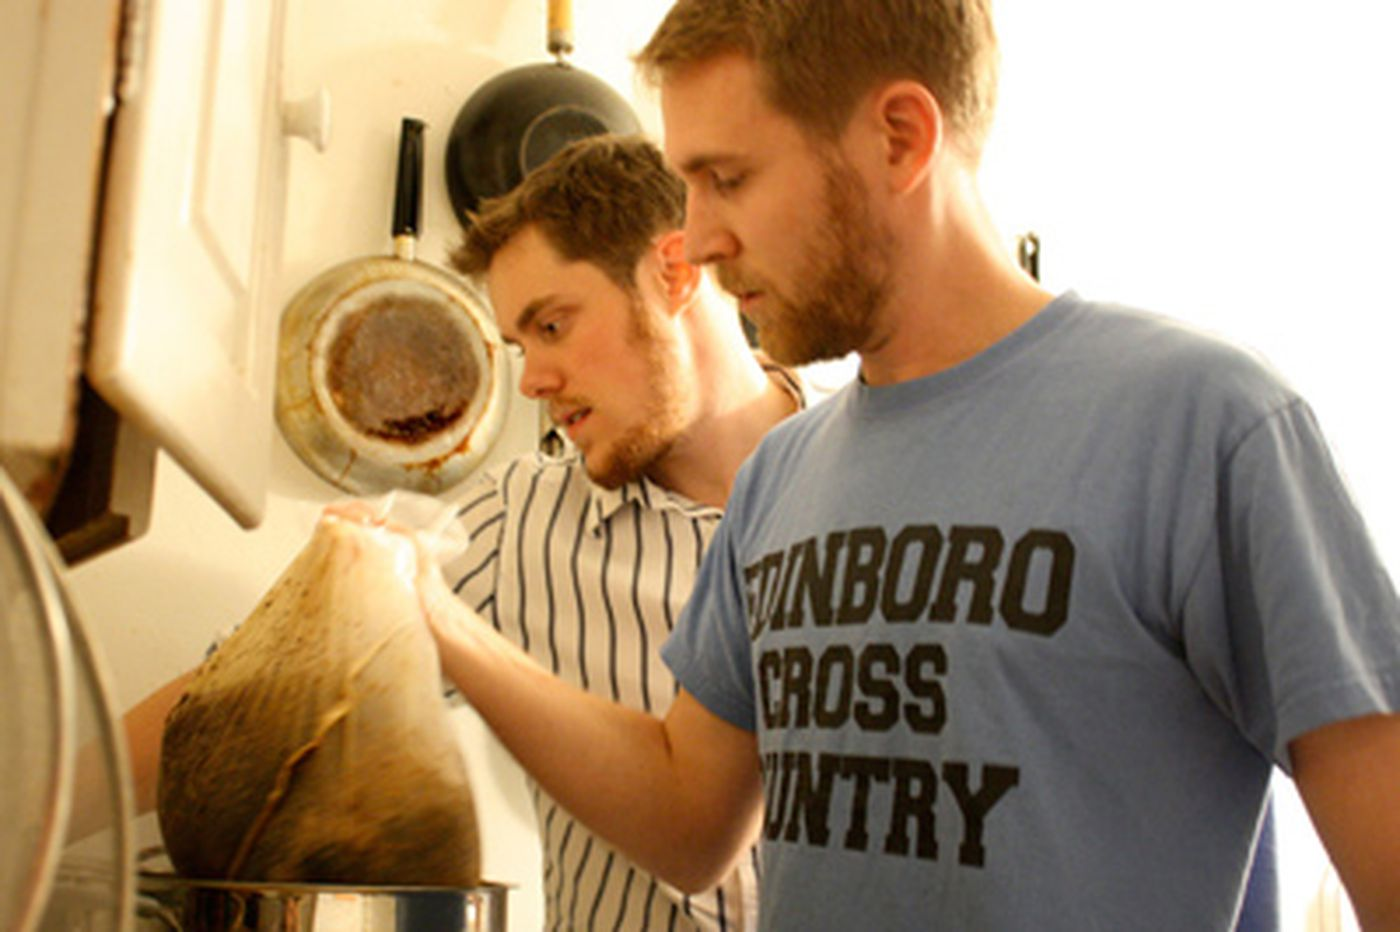 Indie brewers band together, hope for business success